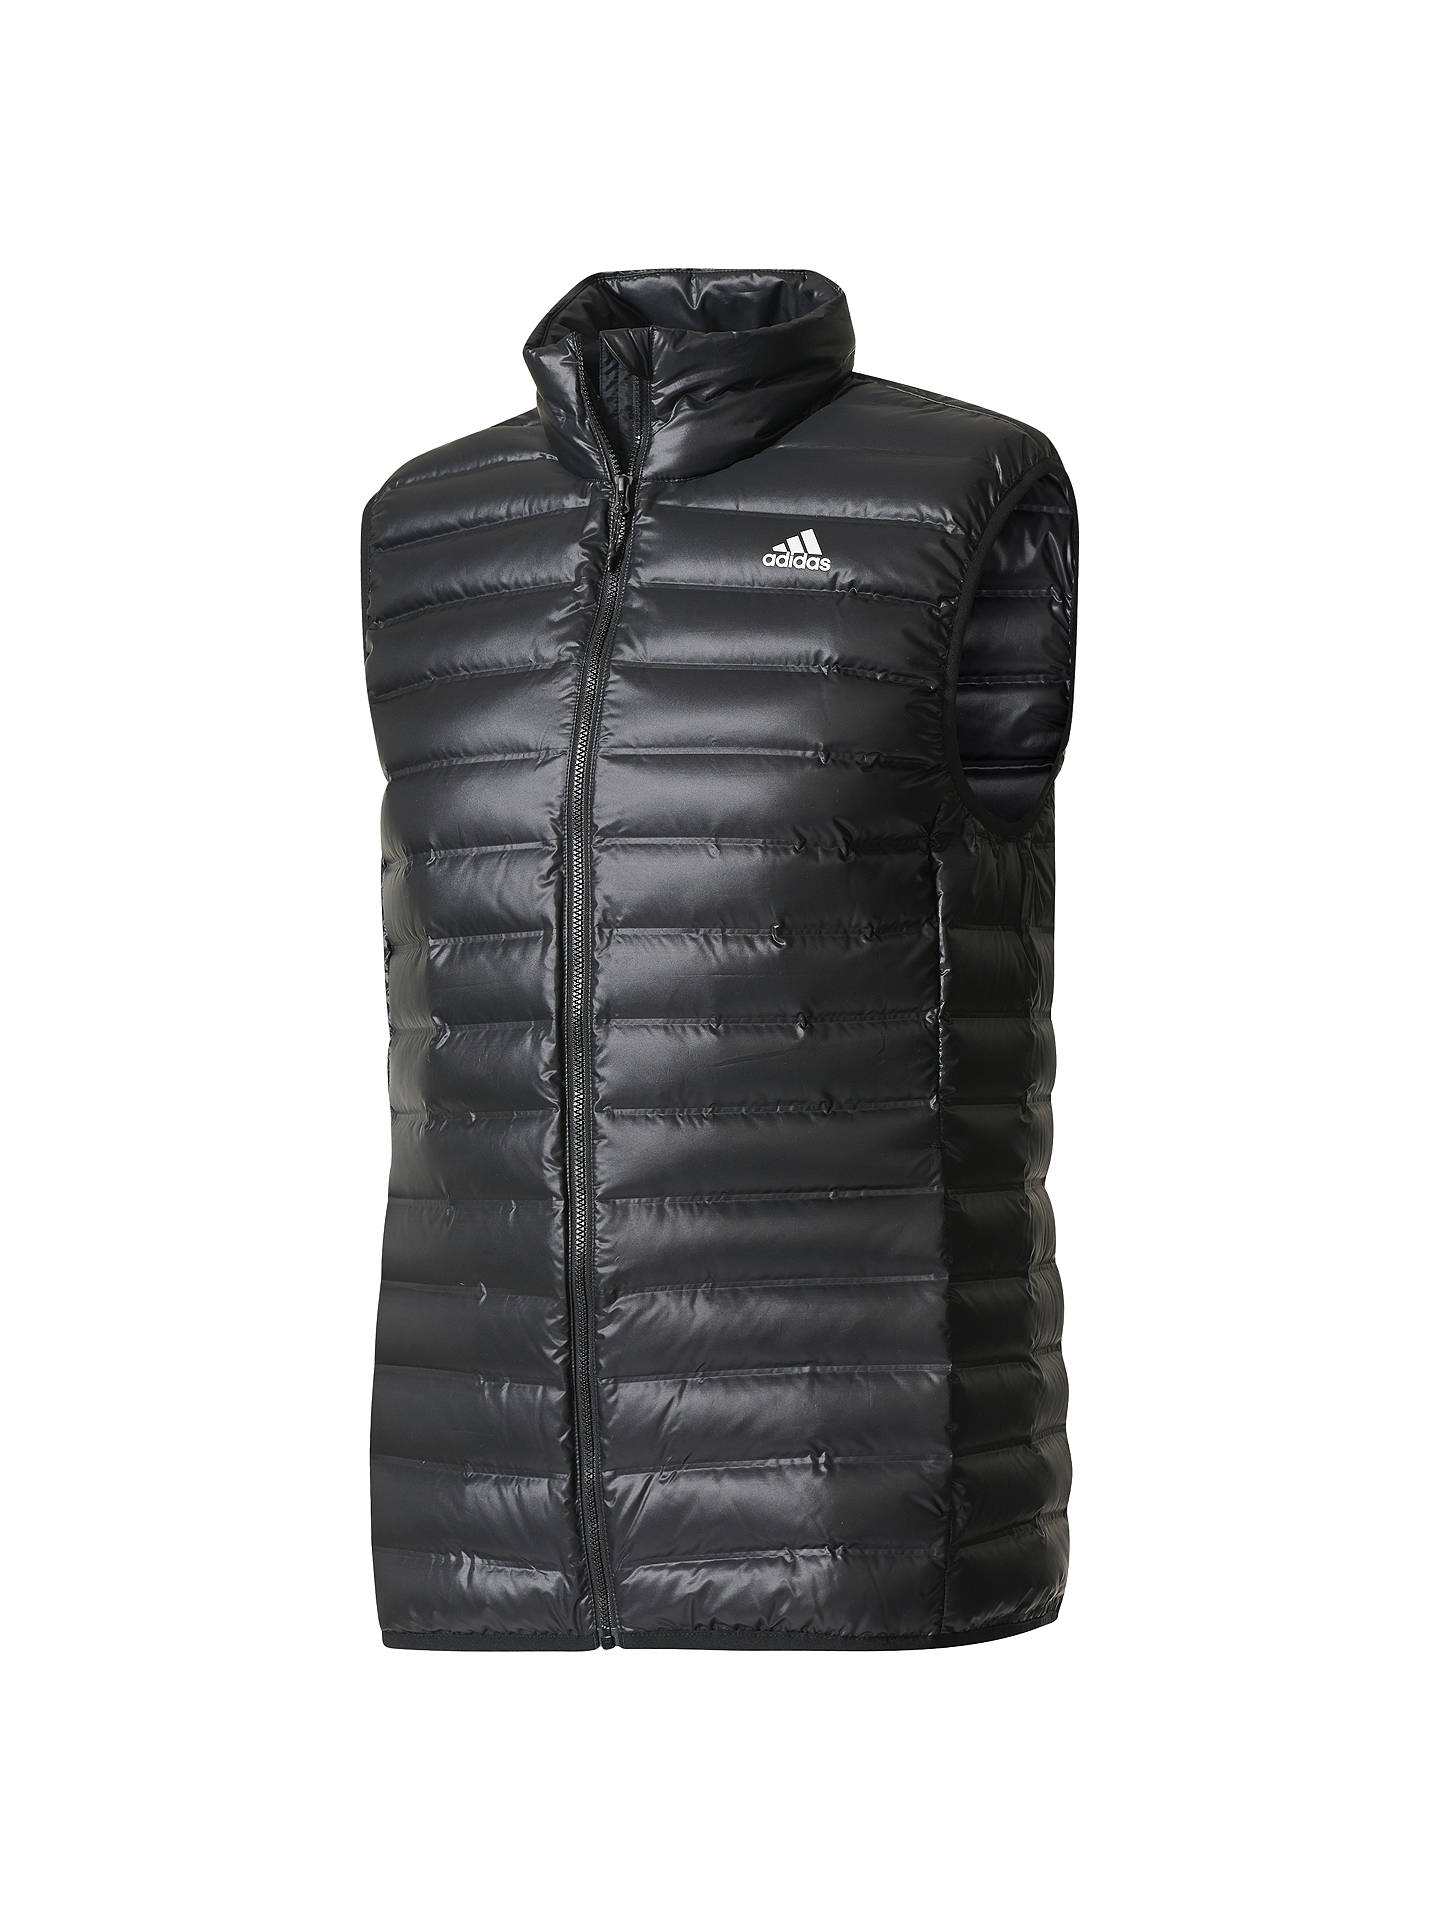 finest selection 92c80 ee7c4 Buy adidas Varilite Down Vest Gilet, Black, S Online at johnlewis.com ...